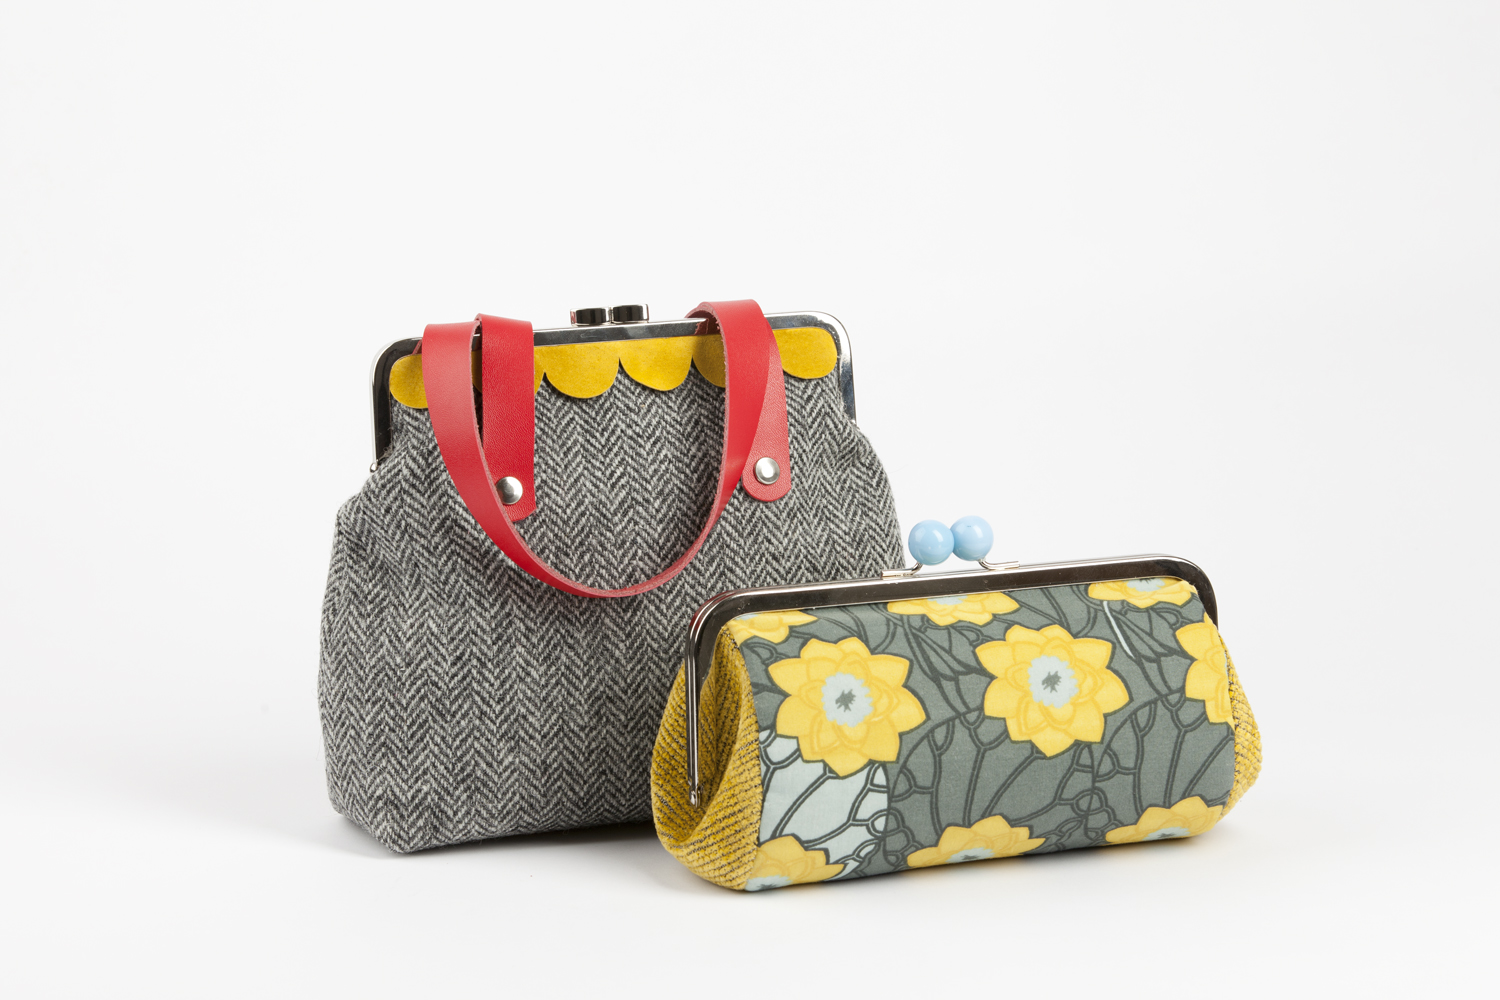 Beginner's Framed Clutch bags: ½ day workshop